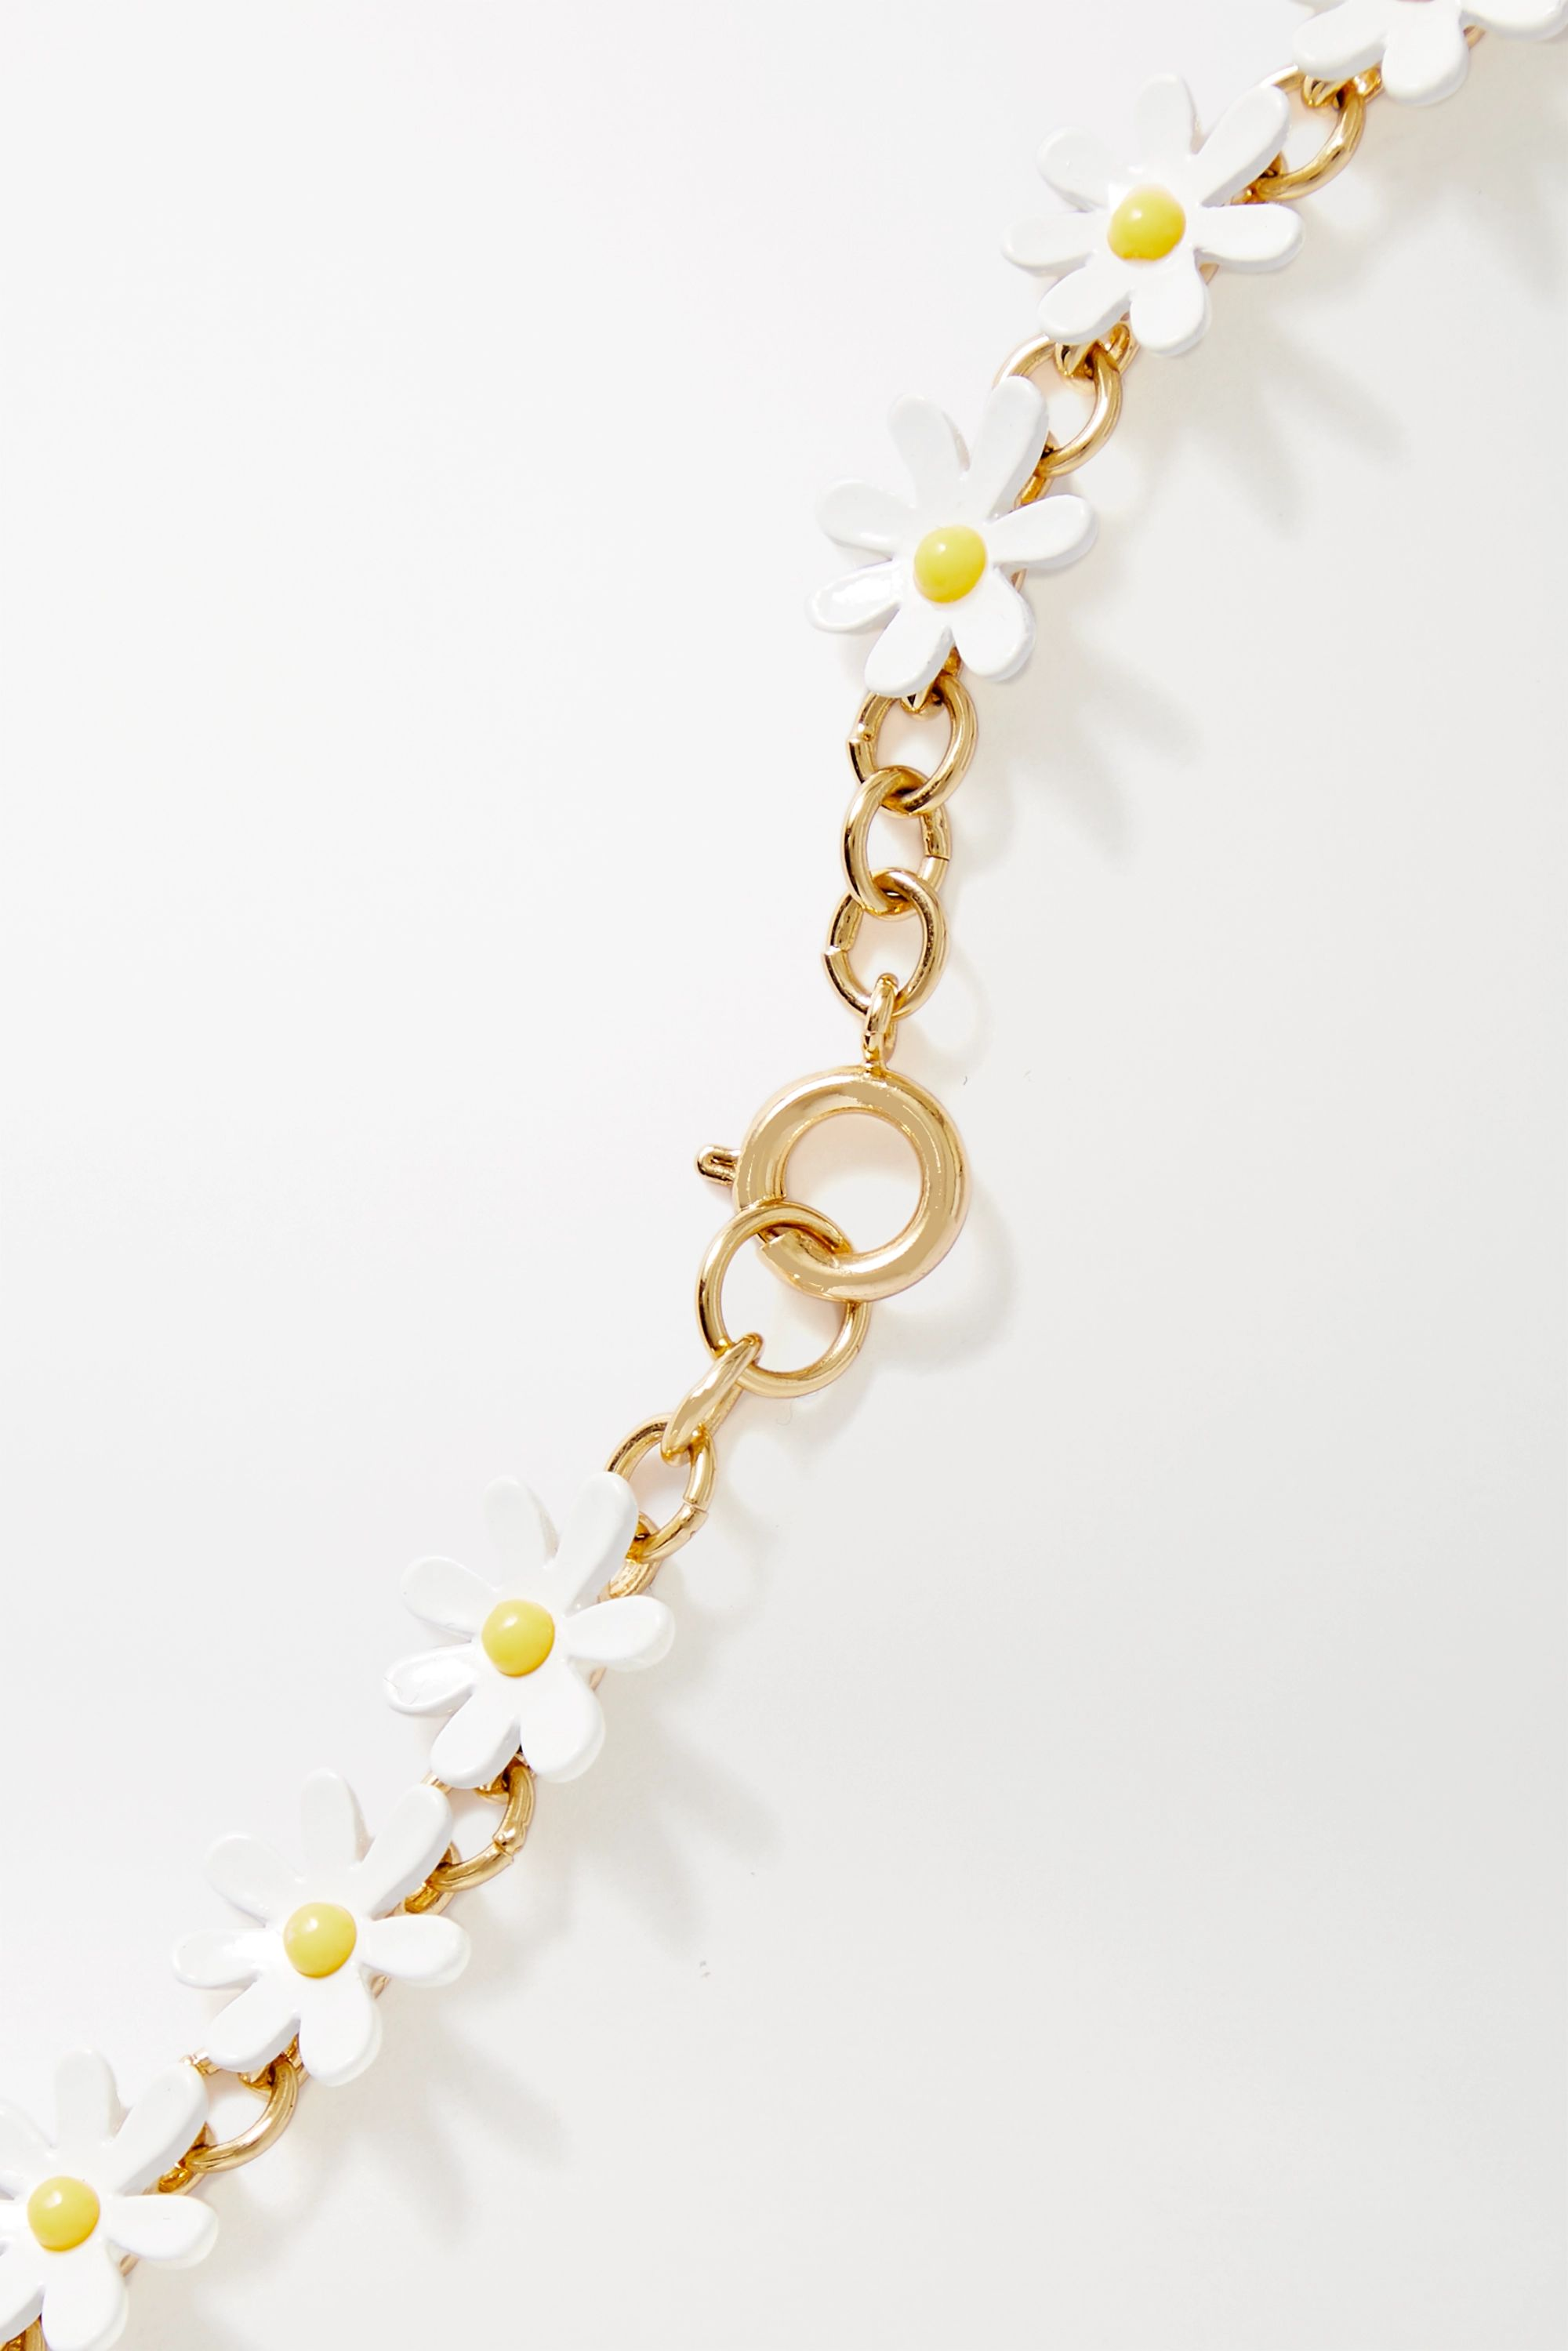 Roxanne Assoulin Everything's Coming Up Daisies gold-tone and enamel necklace